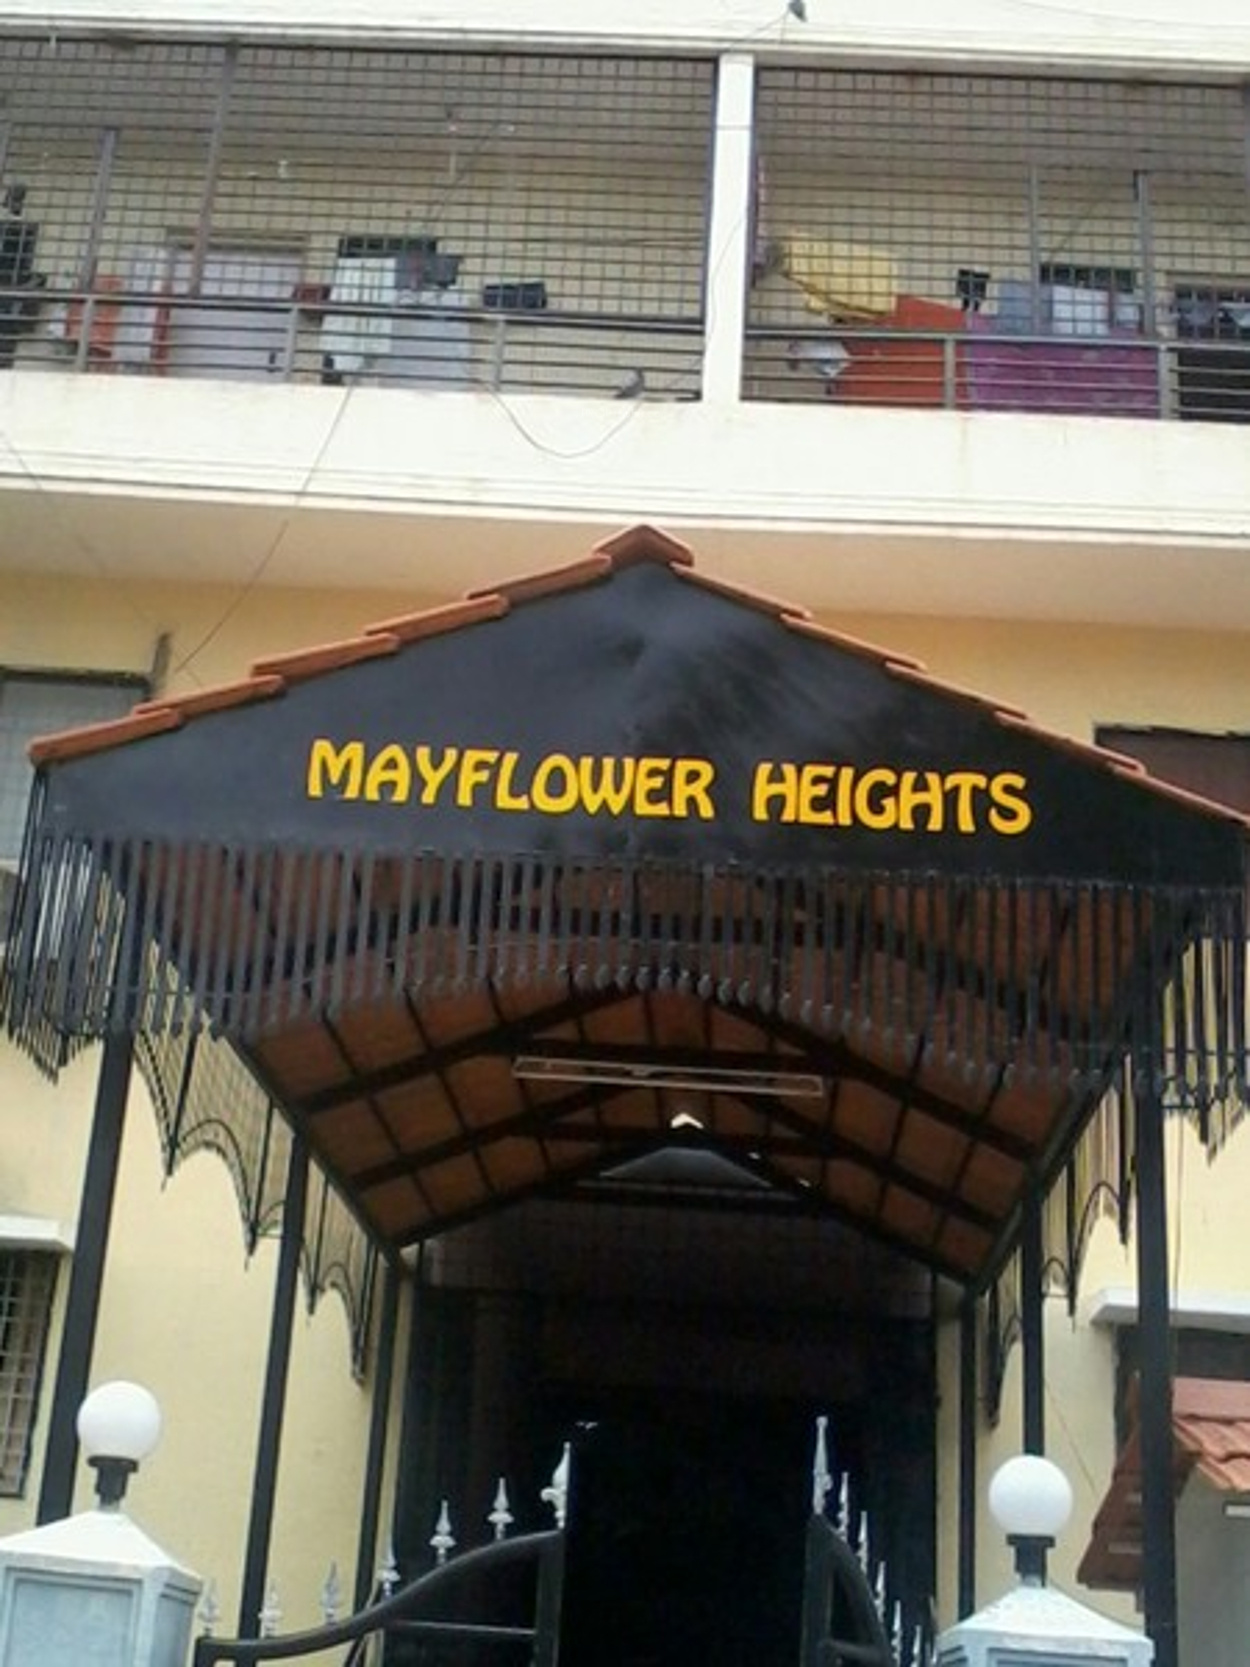 mayflower chatrooms 384 reviews of mayflower seafood restaurant great food terrible service cash onlyyou learn to tolerate the service because their lobster special is the bomb.